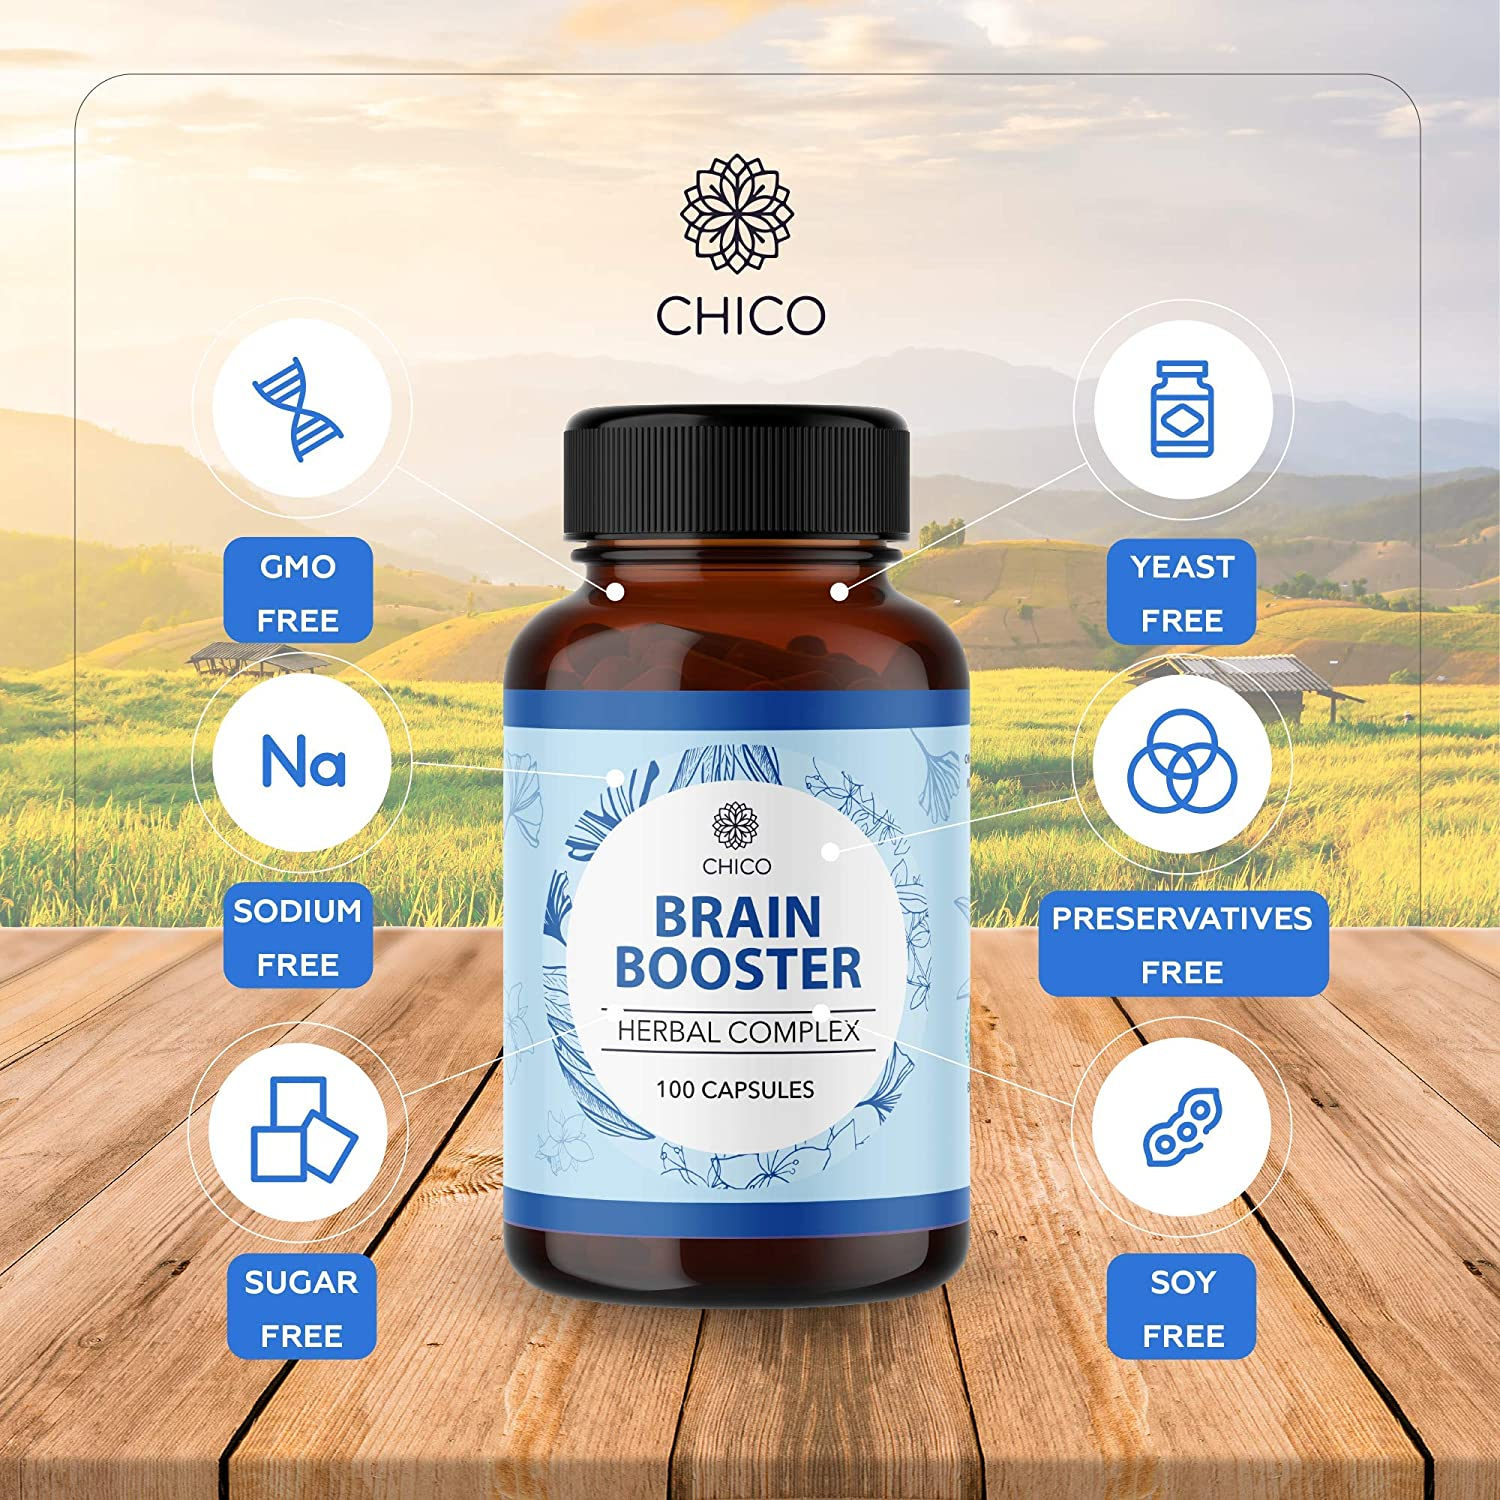 Chico Brain Booster Herbal Complex - Natural Dietary Supplement - Ginkgo Biloba, Bacopa, Panax Ginseng, Sage, St. John's Wort - May Help Support Brain, Heart, & Immune System Function - 100 Capsules